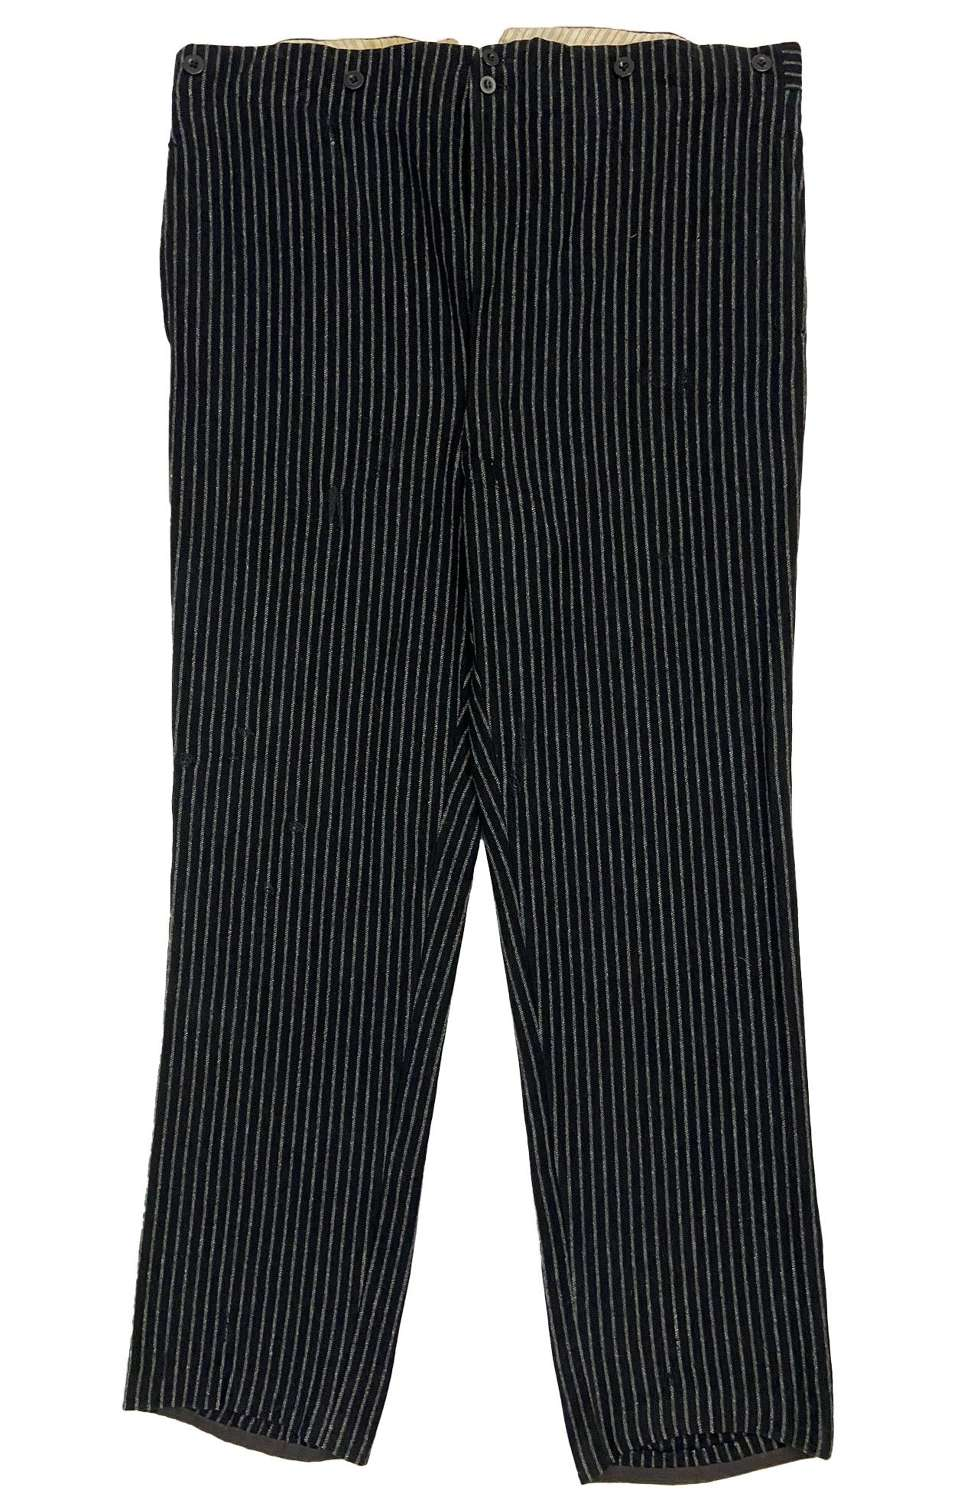 Original 1930s Striped French Work Trousers with Cinch Back